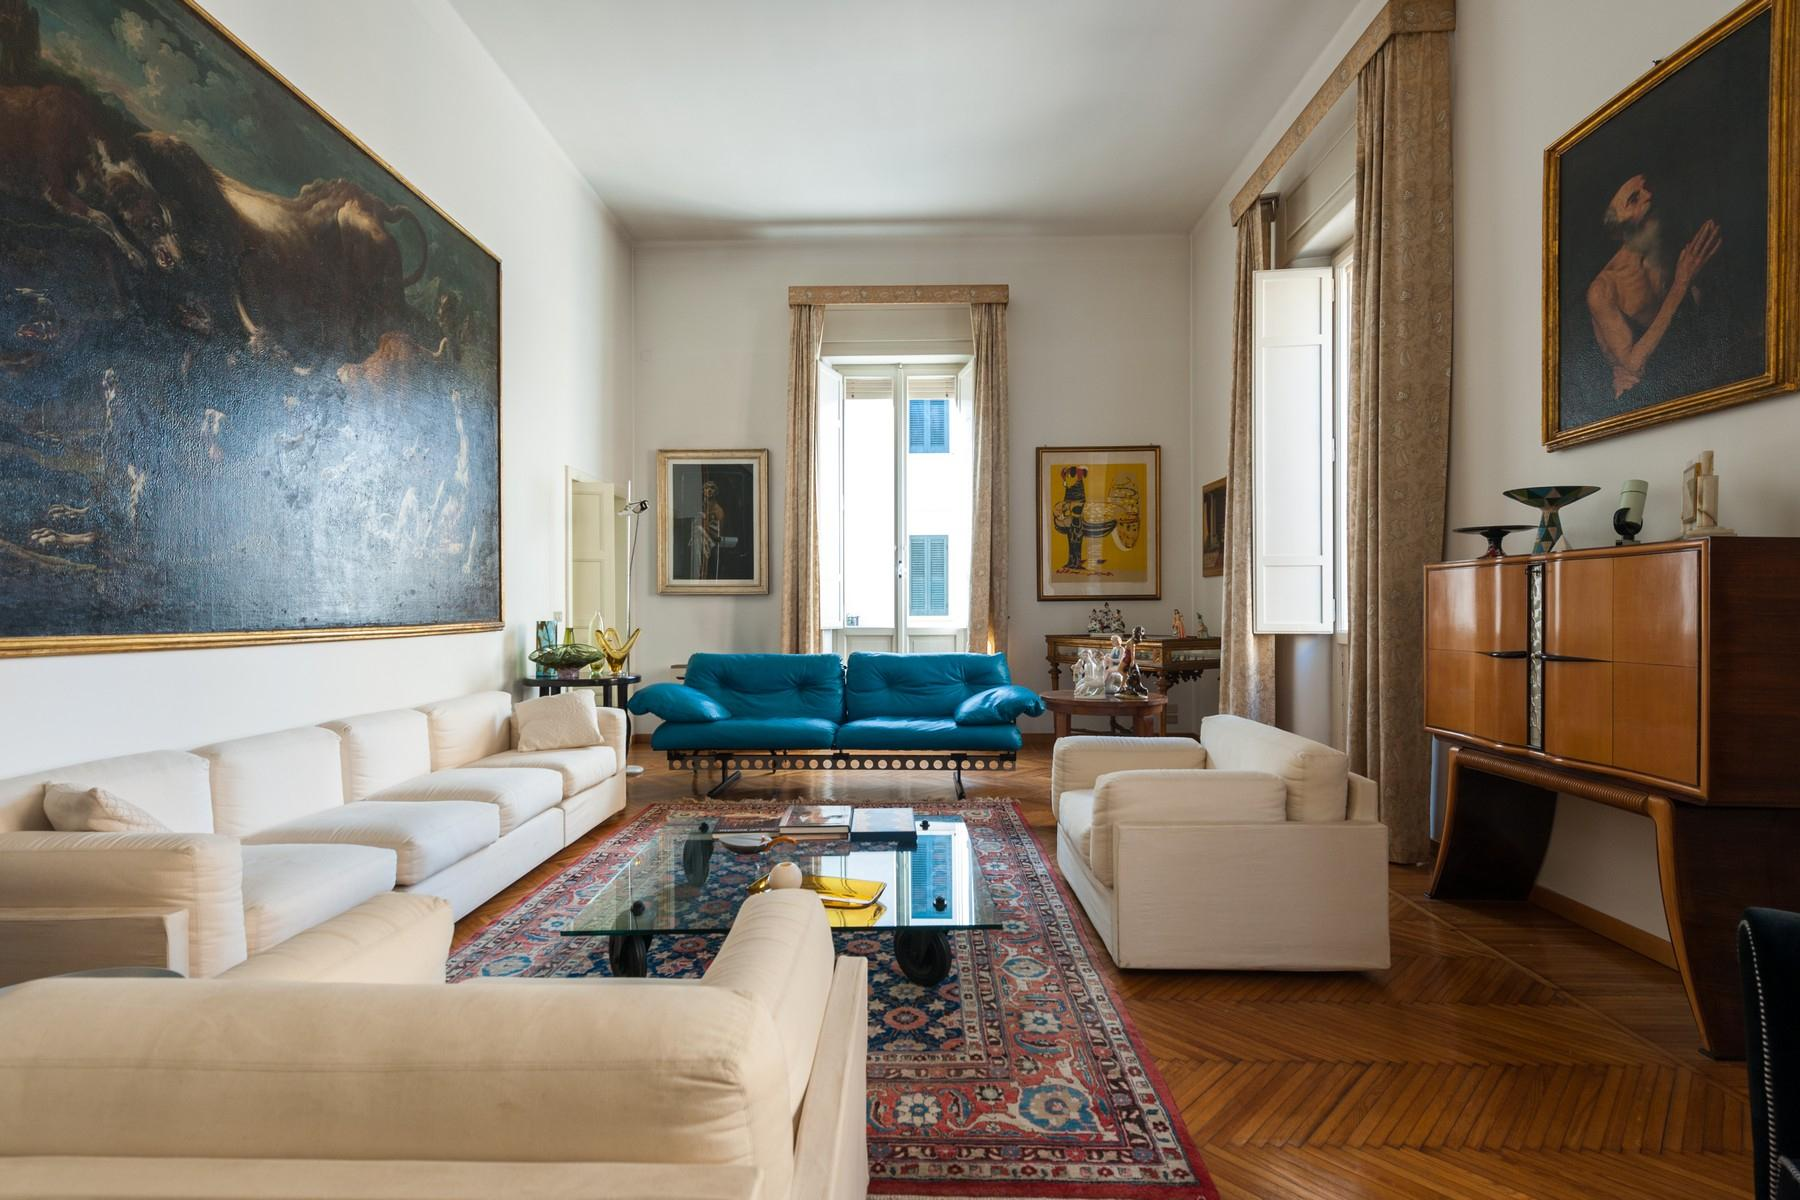 Palazzina Parisi: combination of elegance and rationality - 1